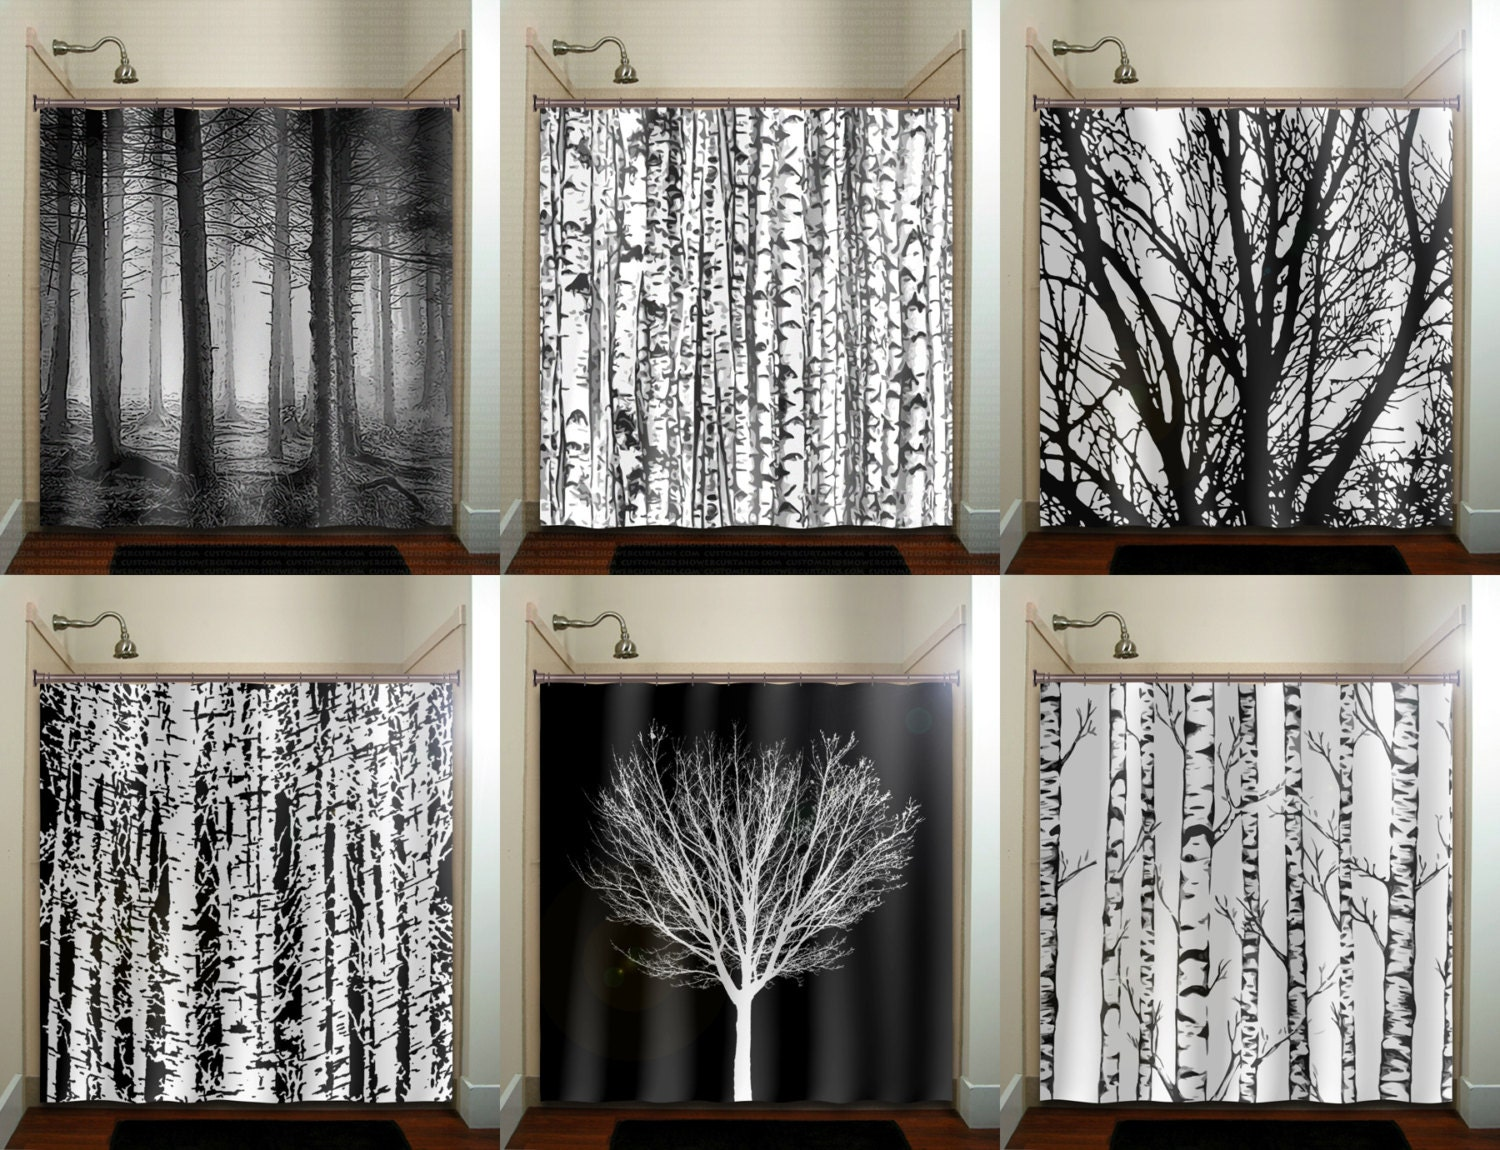 Bathroom decoration shower curtain - Trunk Forest White Birch Trees Shower Curtain Bathroom Decor Fabric Kids Bath Window Curtains Panels Valance Bathmat